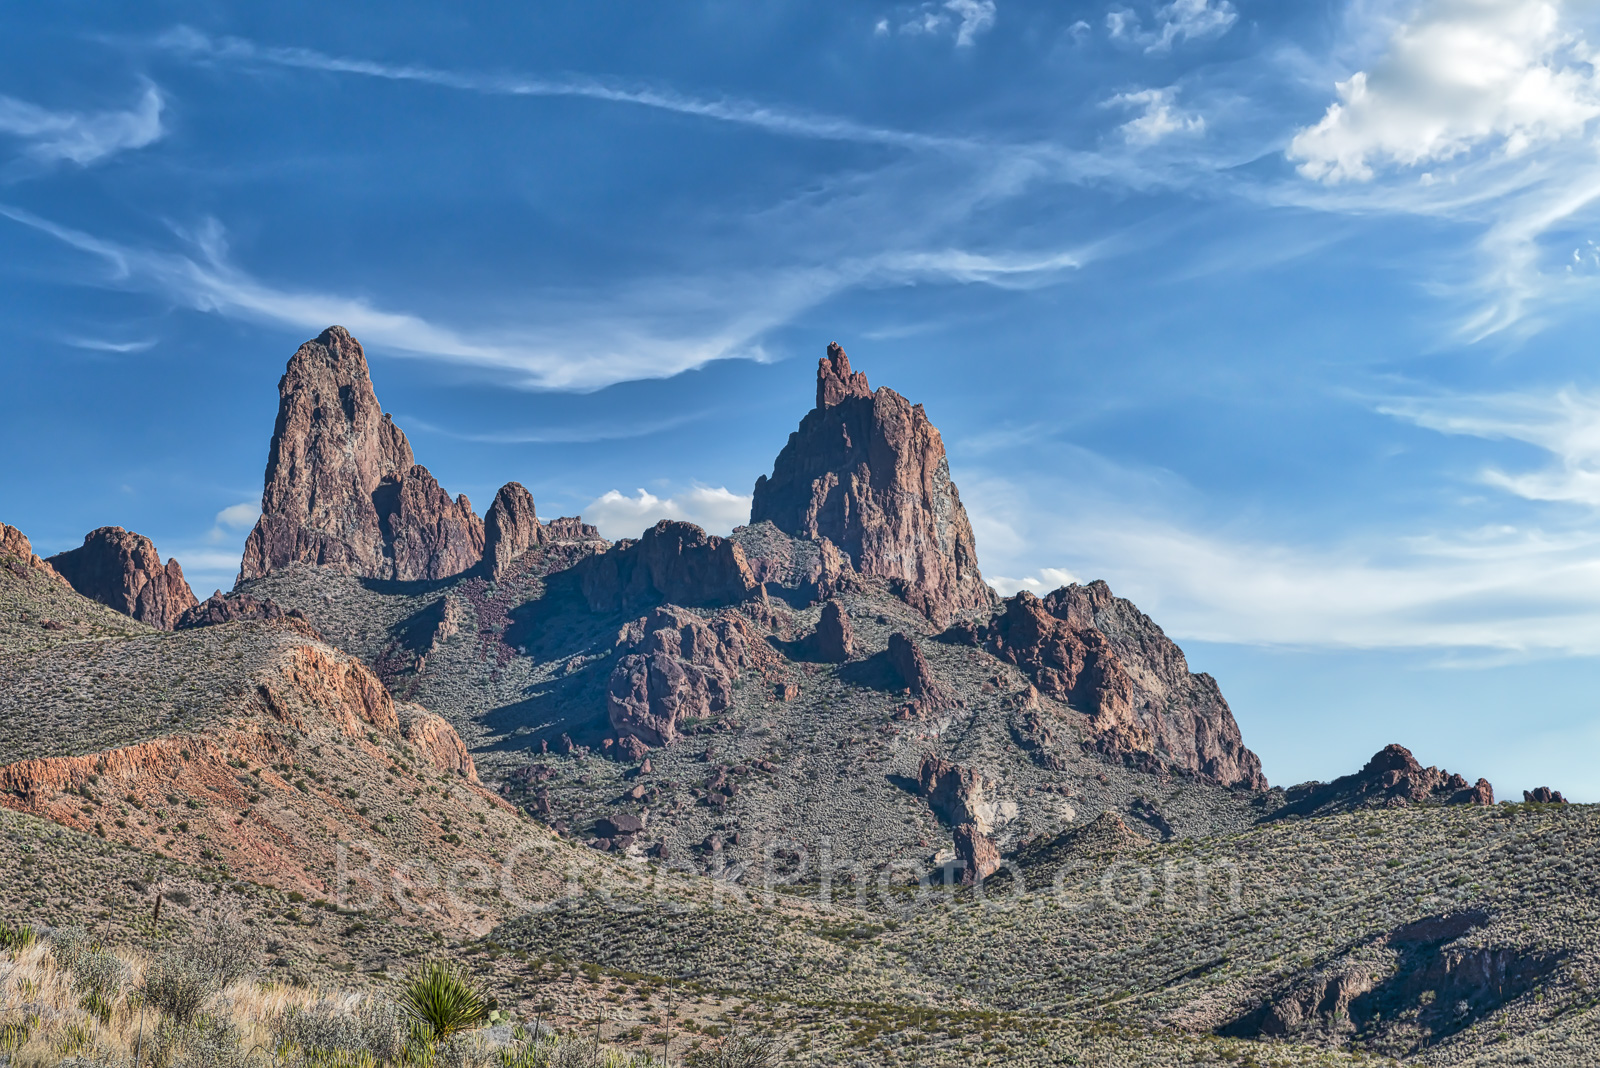 Mule Ear in Big Bend - Mule Ear in Big Bend National Park is such a wonderful place to visit. You can see the mule ear peaks...